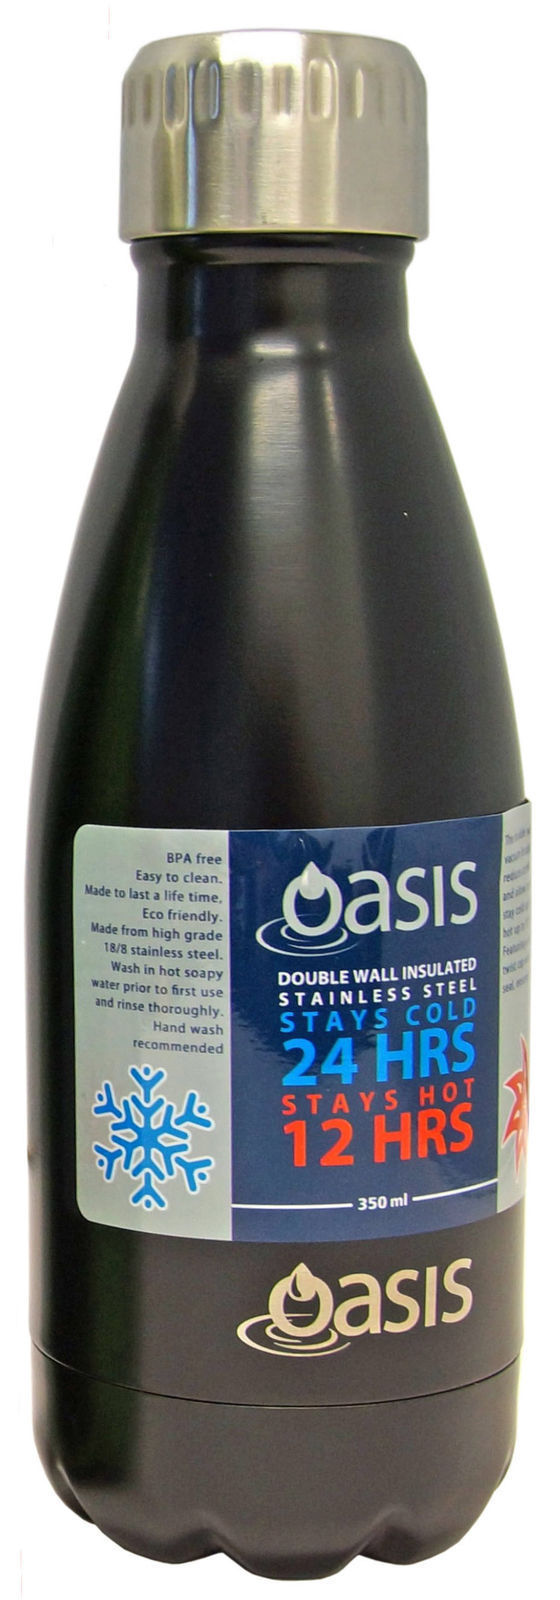 D.Line Oasis Stainless Steel Double Wall Insulated Water Bottle 350ml Matte Black